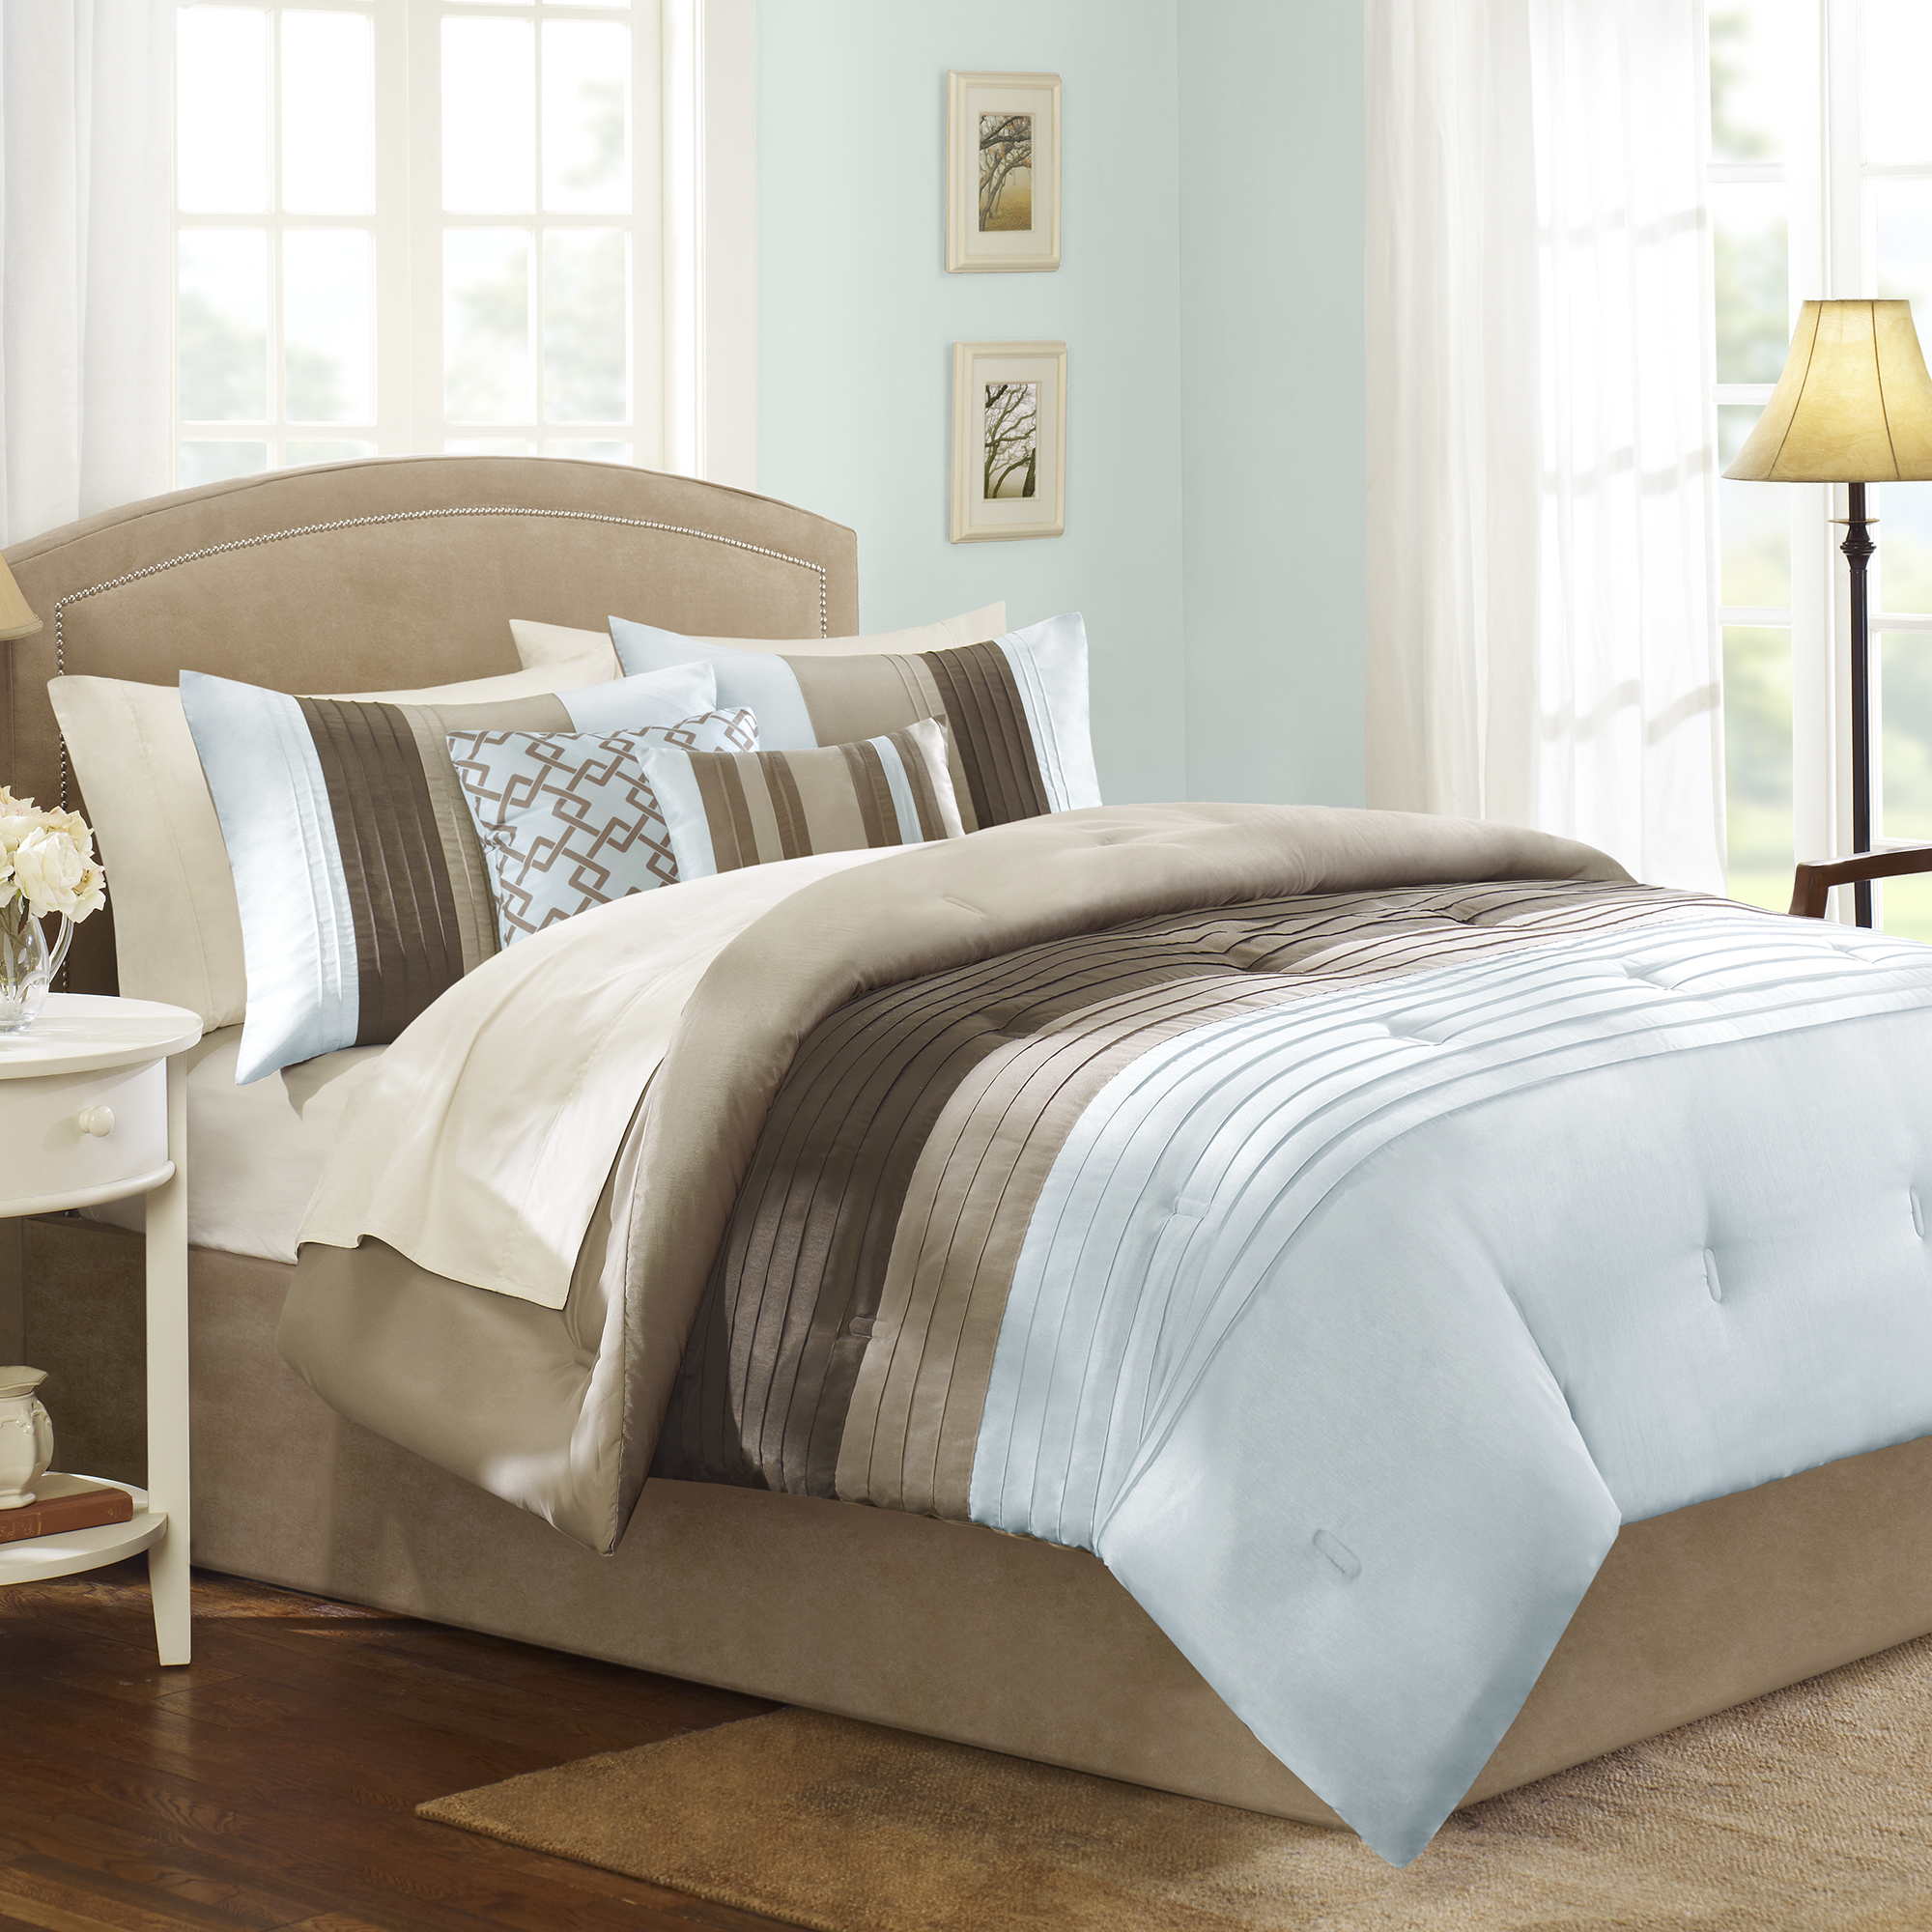 Better Homes and Gardens Pleated 5-Piece Bedding Comforter Set